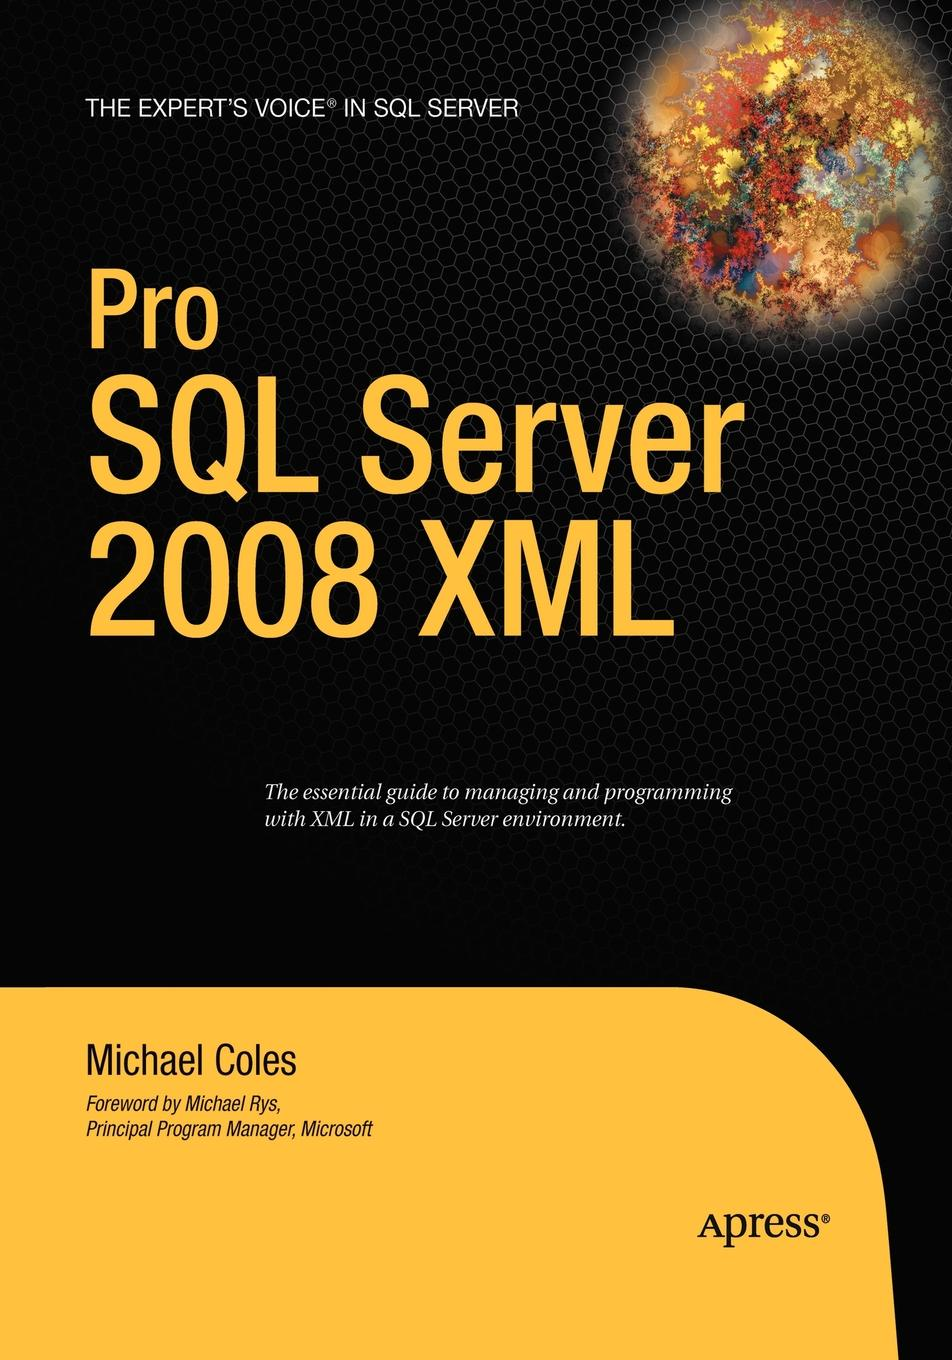 Michael Coles Pro SQL Server 2008 XML rigoberto garcia foundations book ii understanding sql server 2005 supporting technology xml xslt xquery xpath ms schemas dtd s namespaces